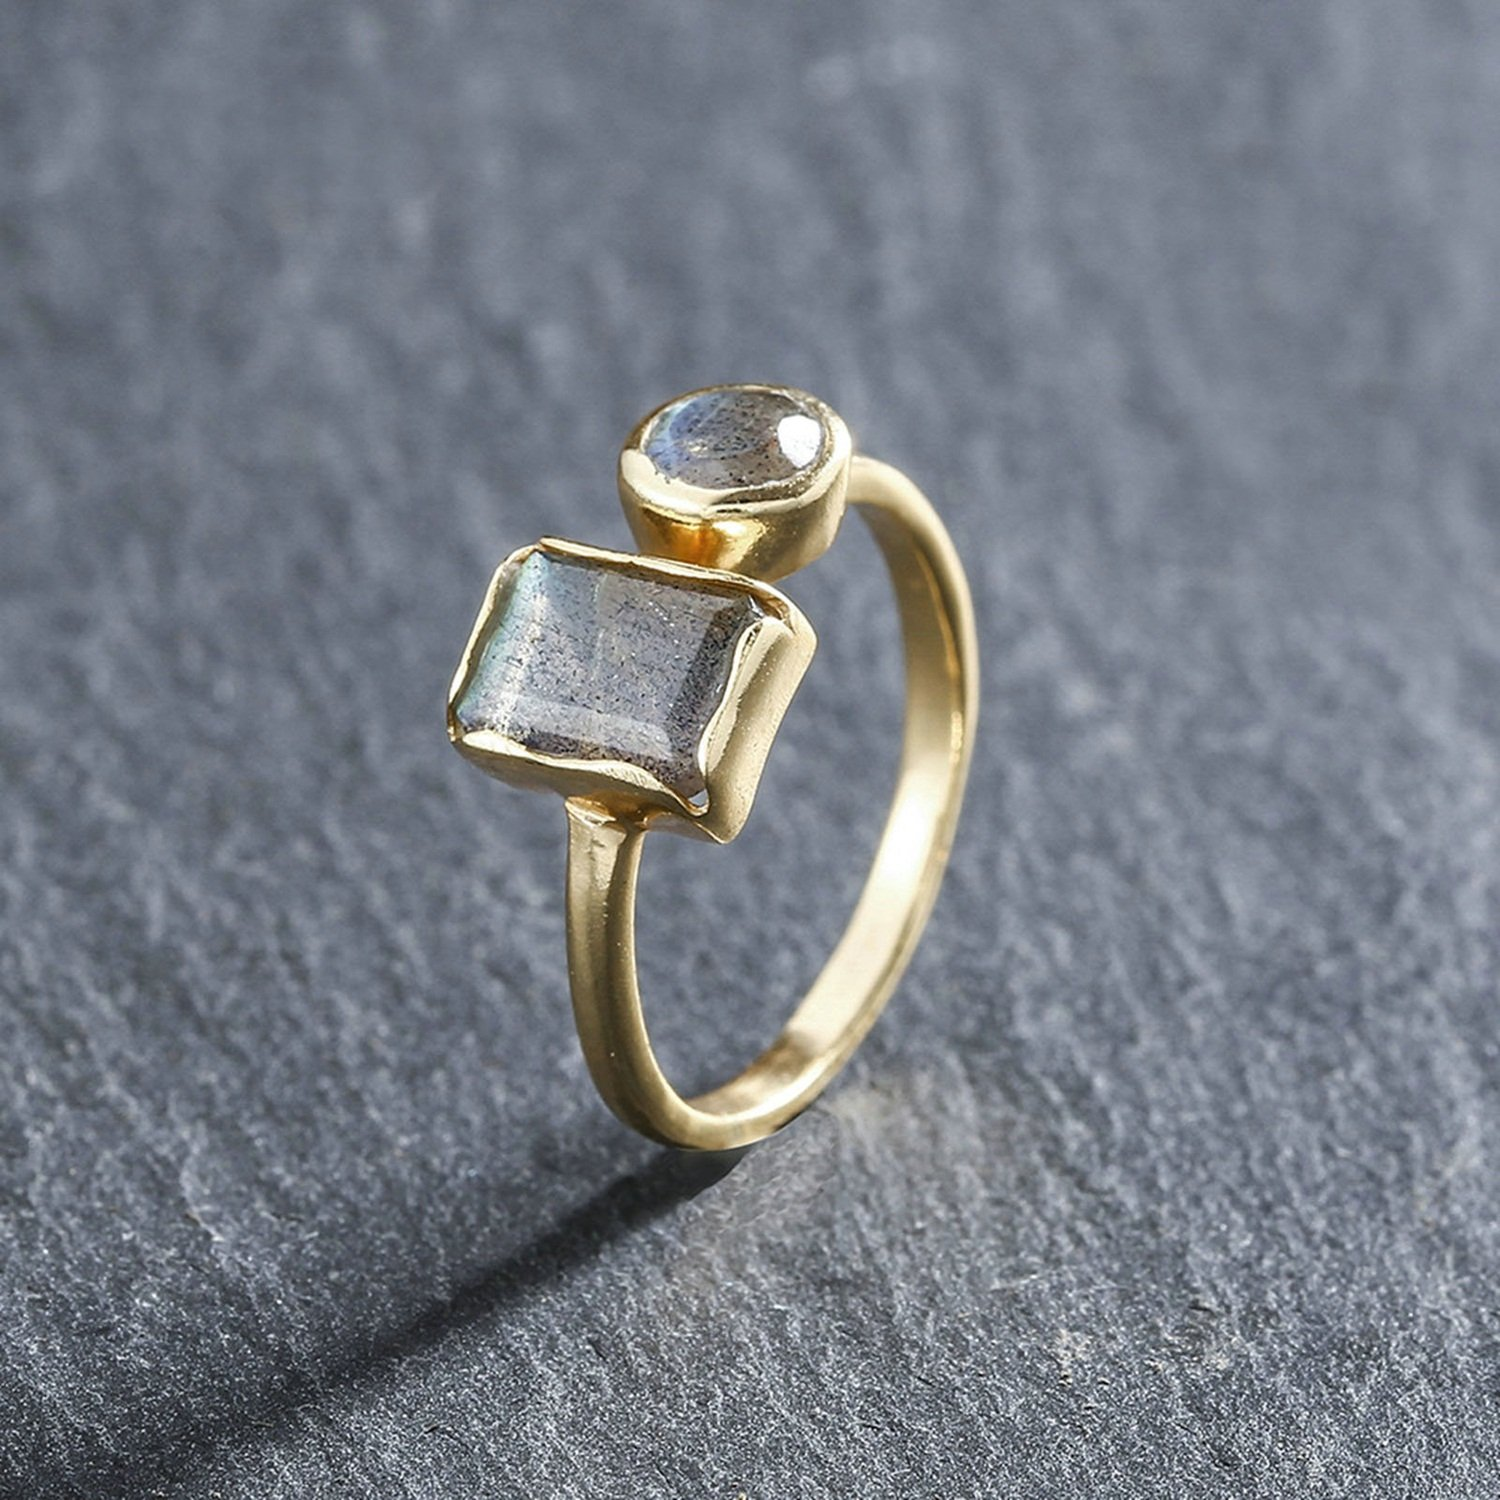 Natural Stone Inlay Gold Plated Ring Adjustable Aokarry 925 Sterling Silver Rings for Women